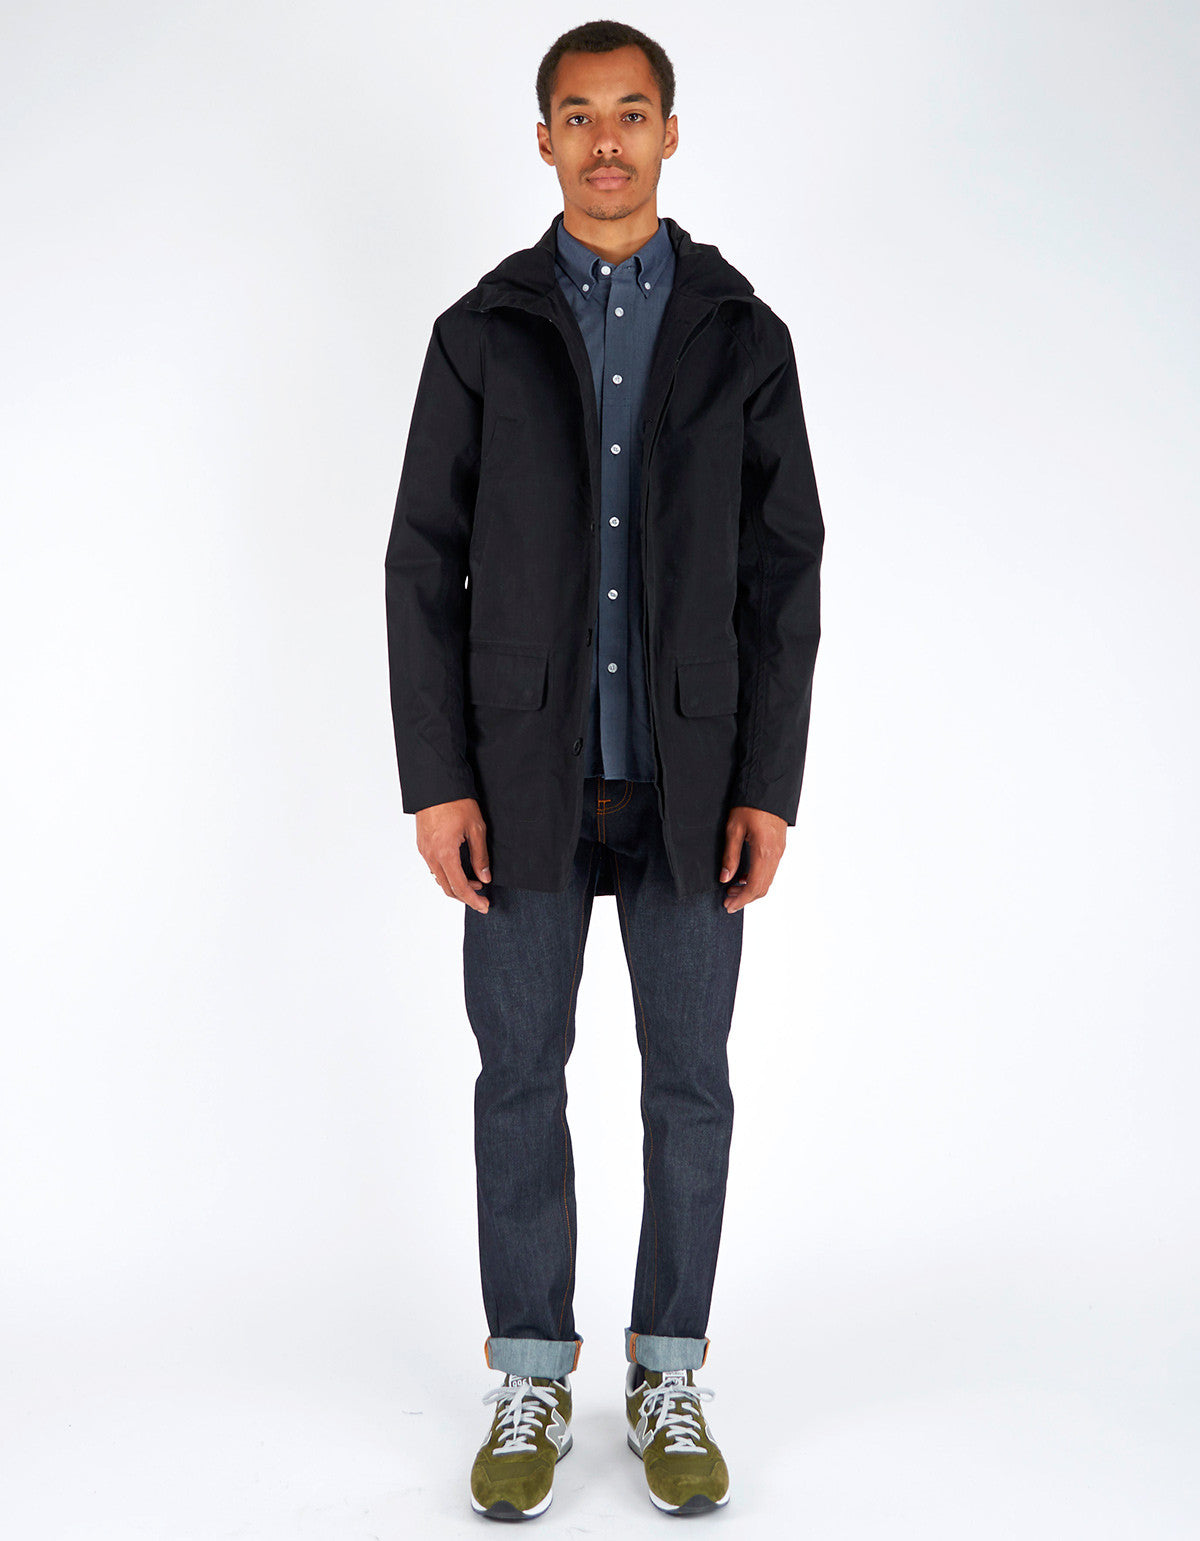 Baro Brockton Jacket Black - Still Life - 2